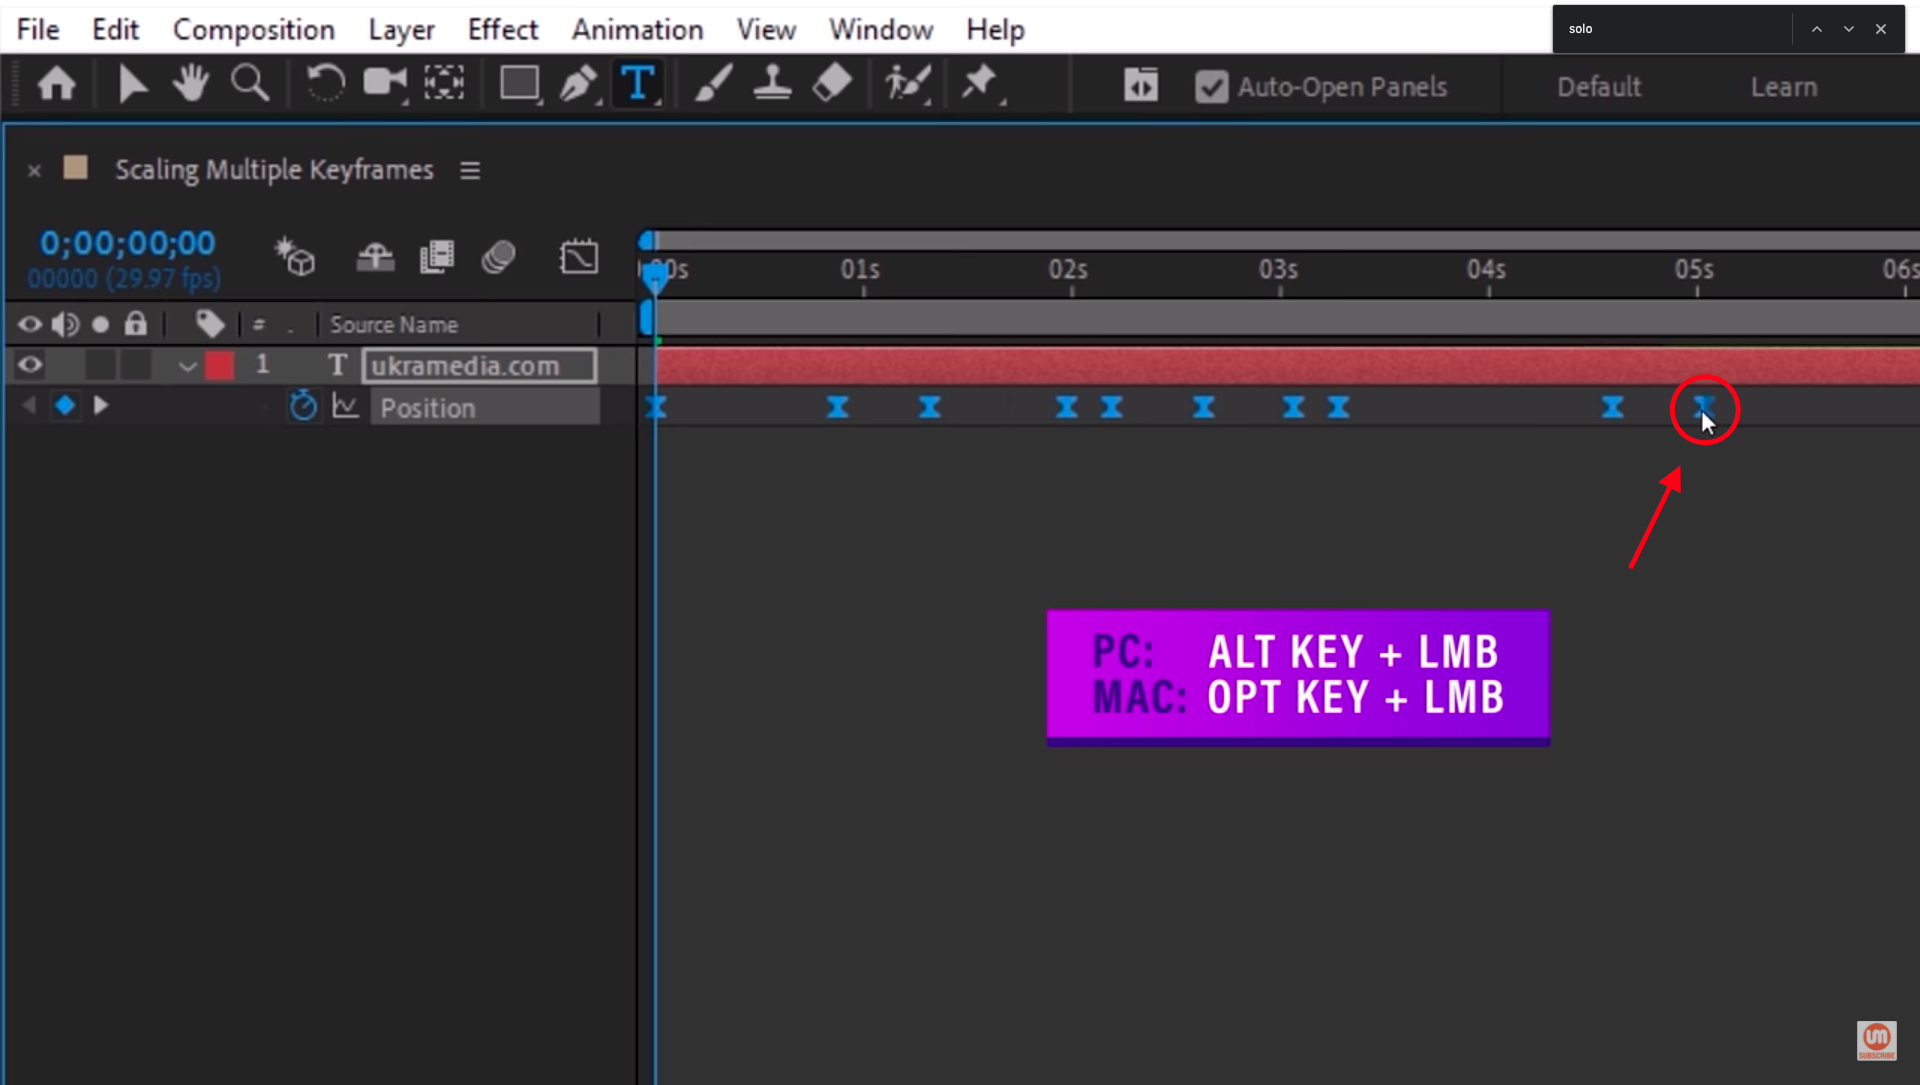 Scaling multiple keyframes in After Effects